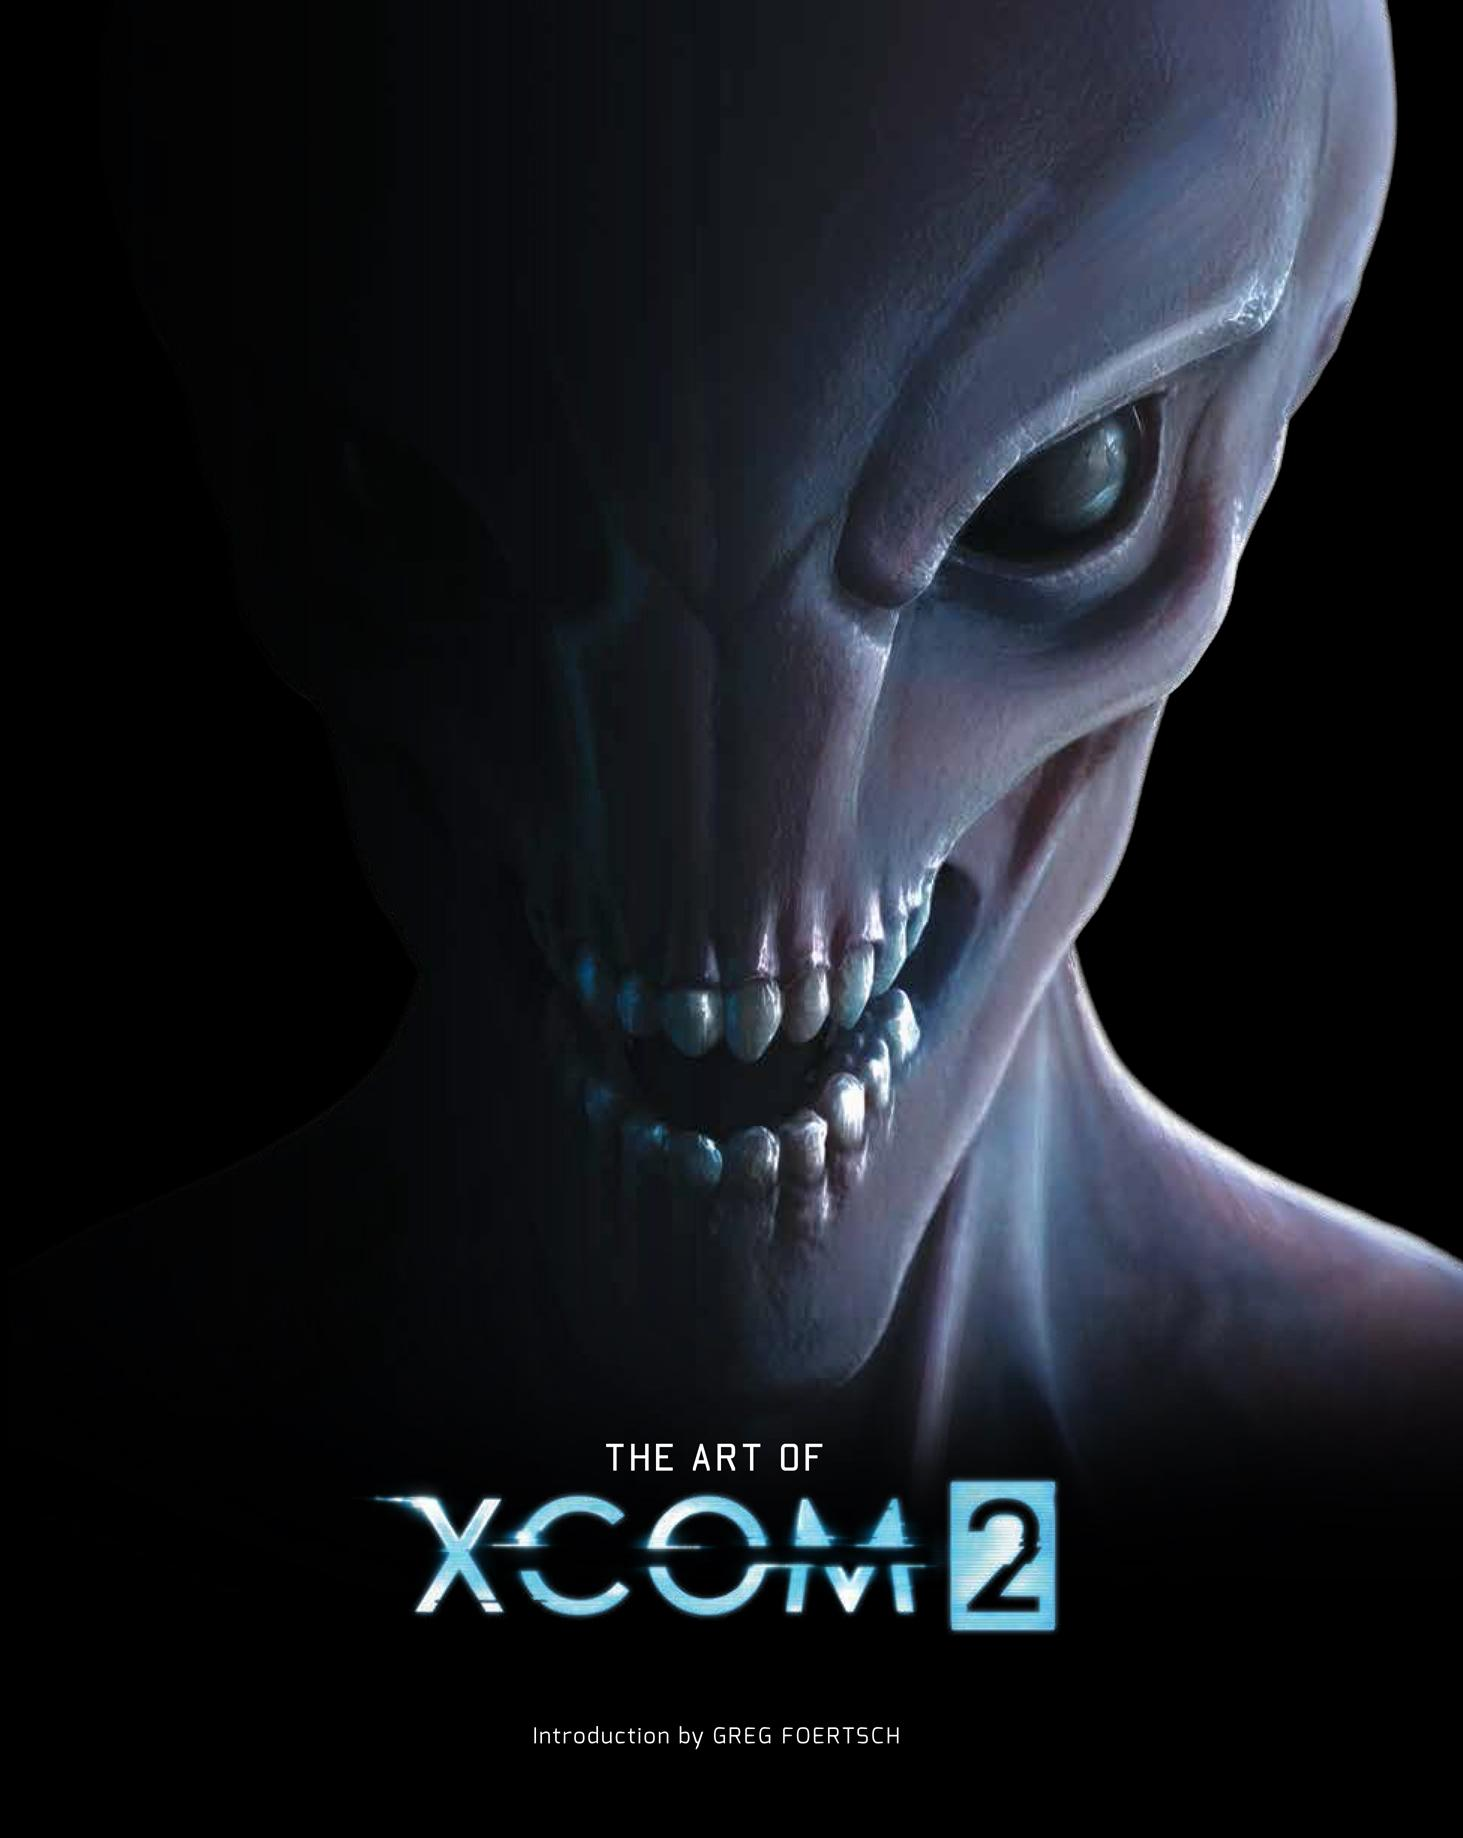 The Art of Xcom 2 verne j from the earth to the moon and round the moon